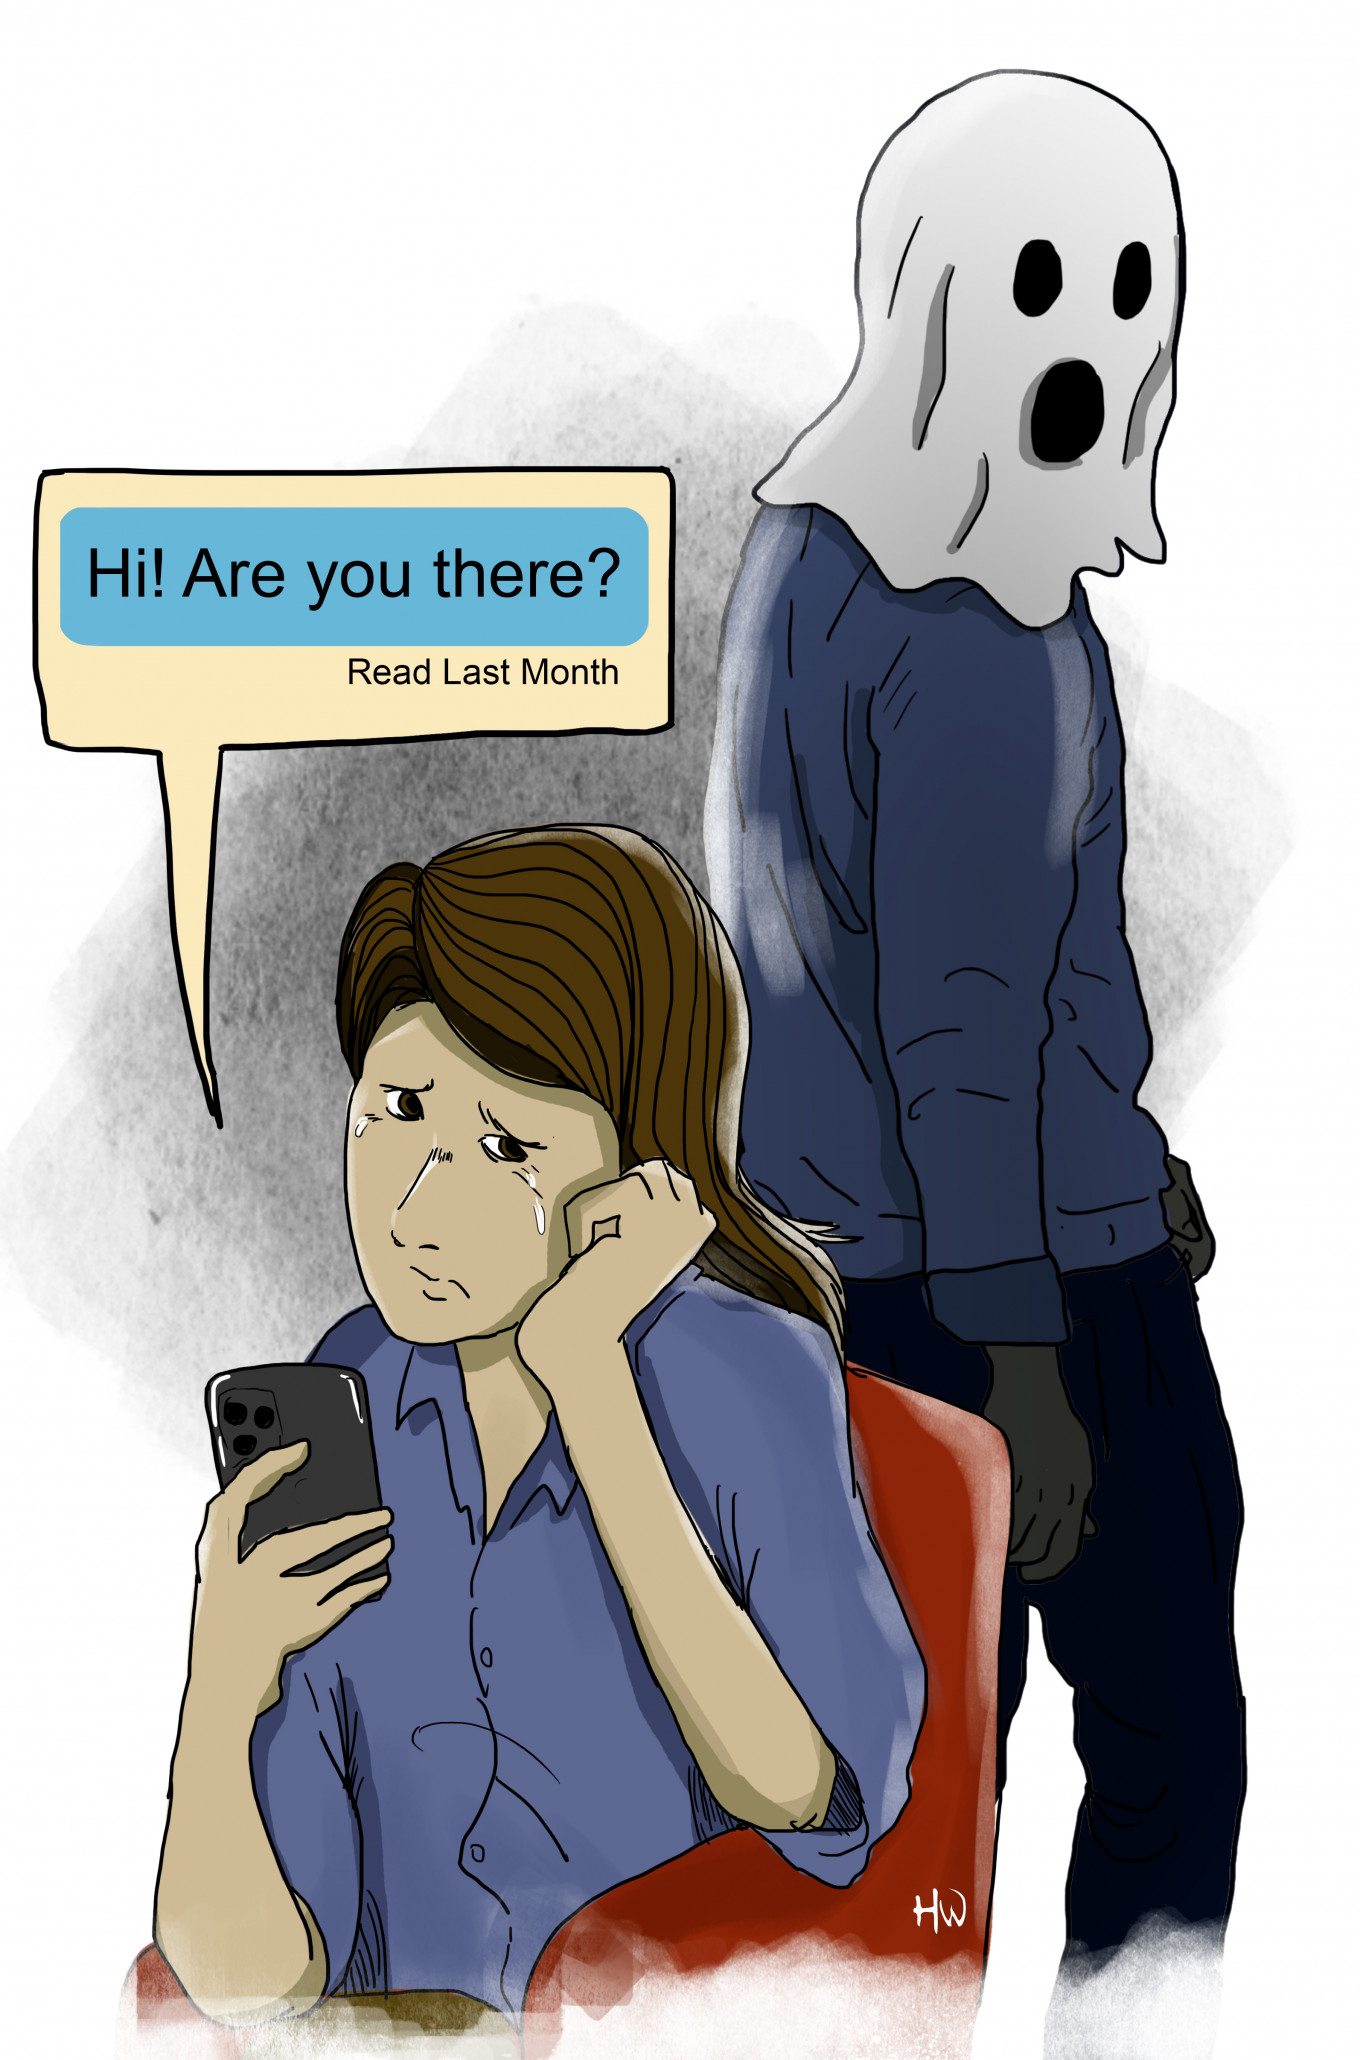 Ghosting: Is the phenomenon of shutting people out acceptable?